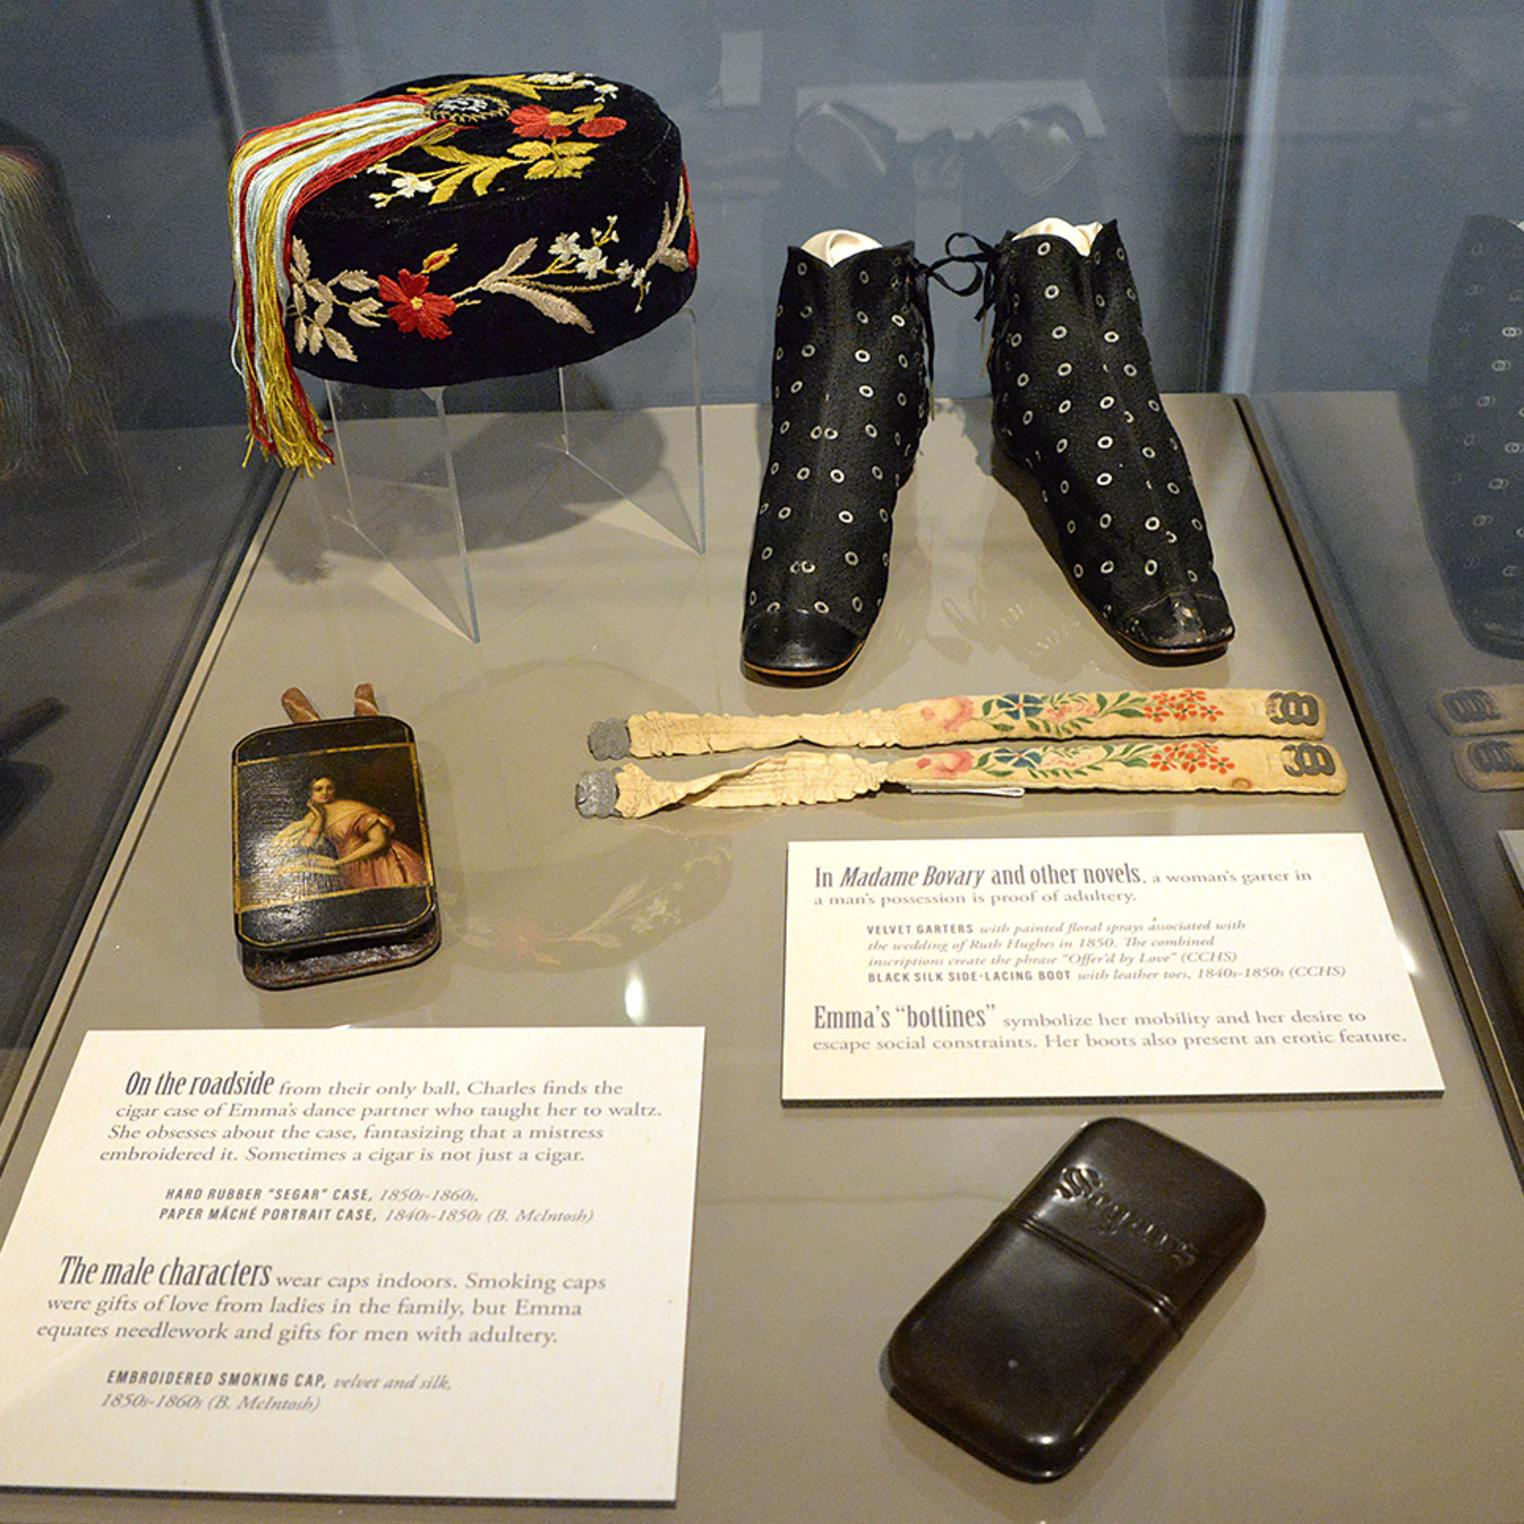 Shippensburg University Fashion Archives and Museum exhibit preview